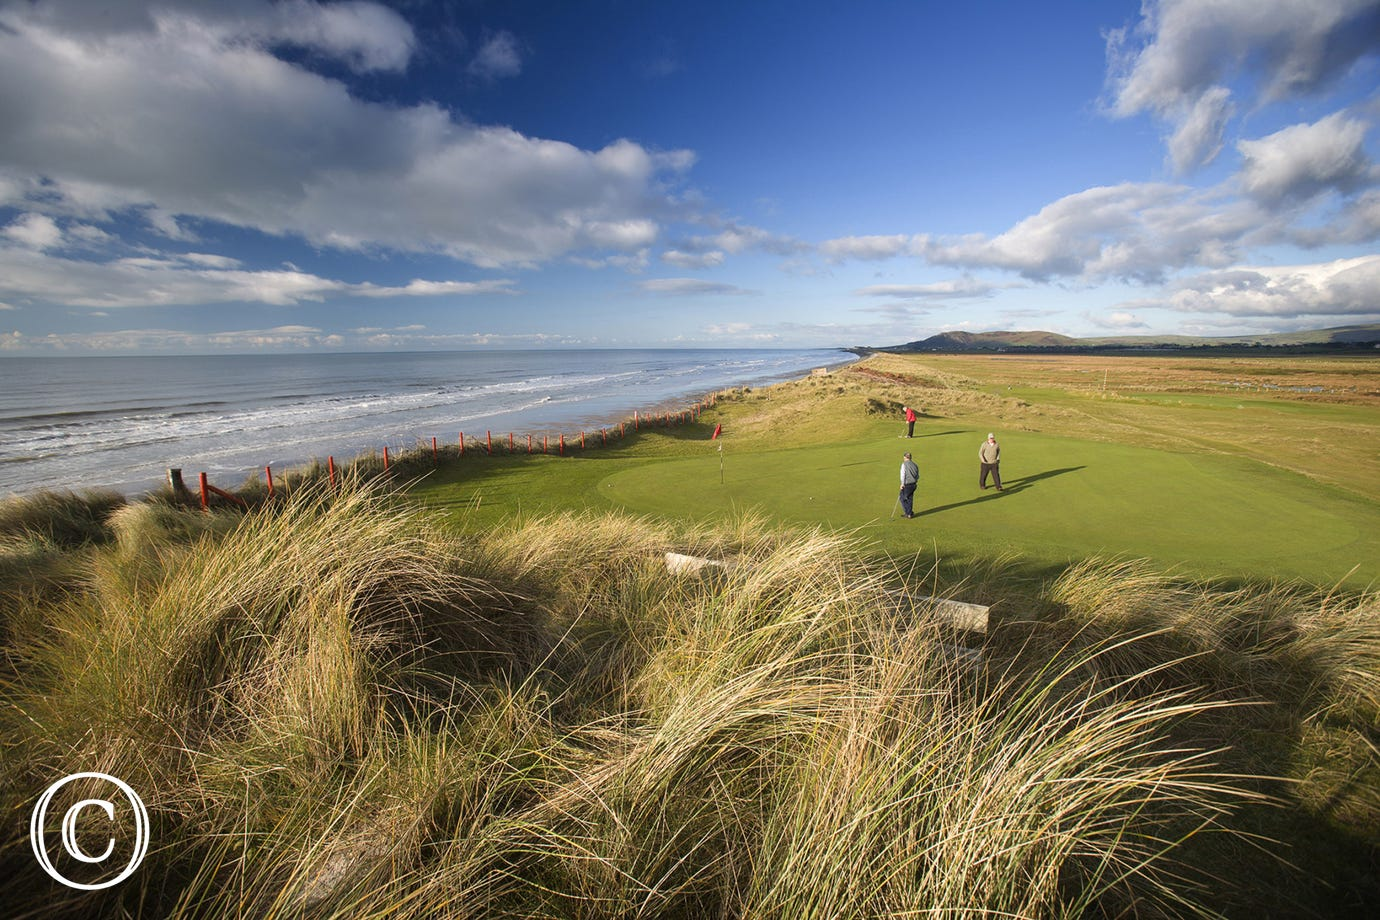 Aberdyfi Golf Club - an 18 hole golf course just 9 miles away